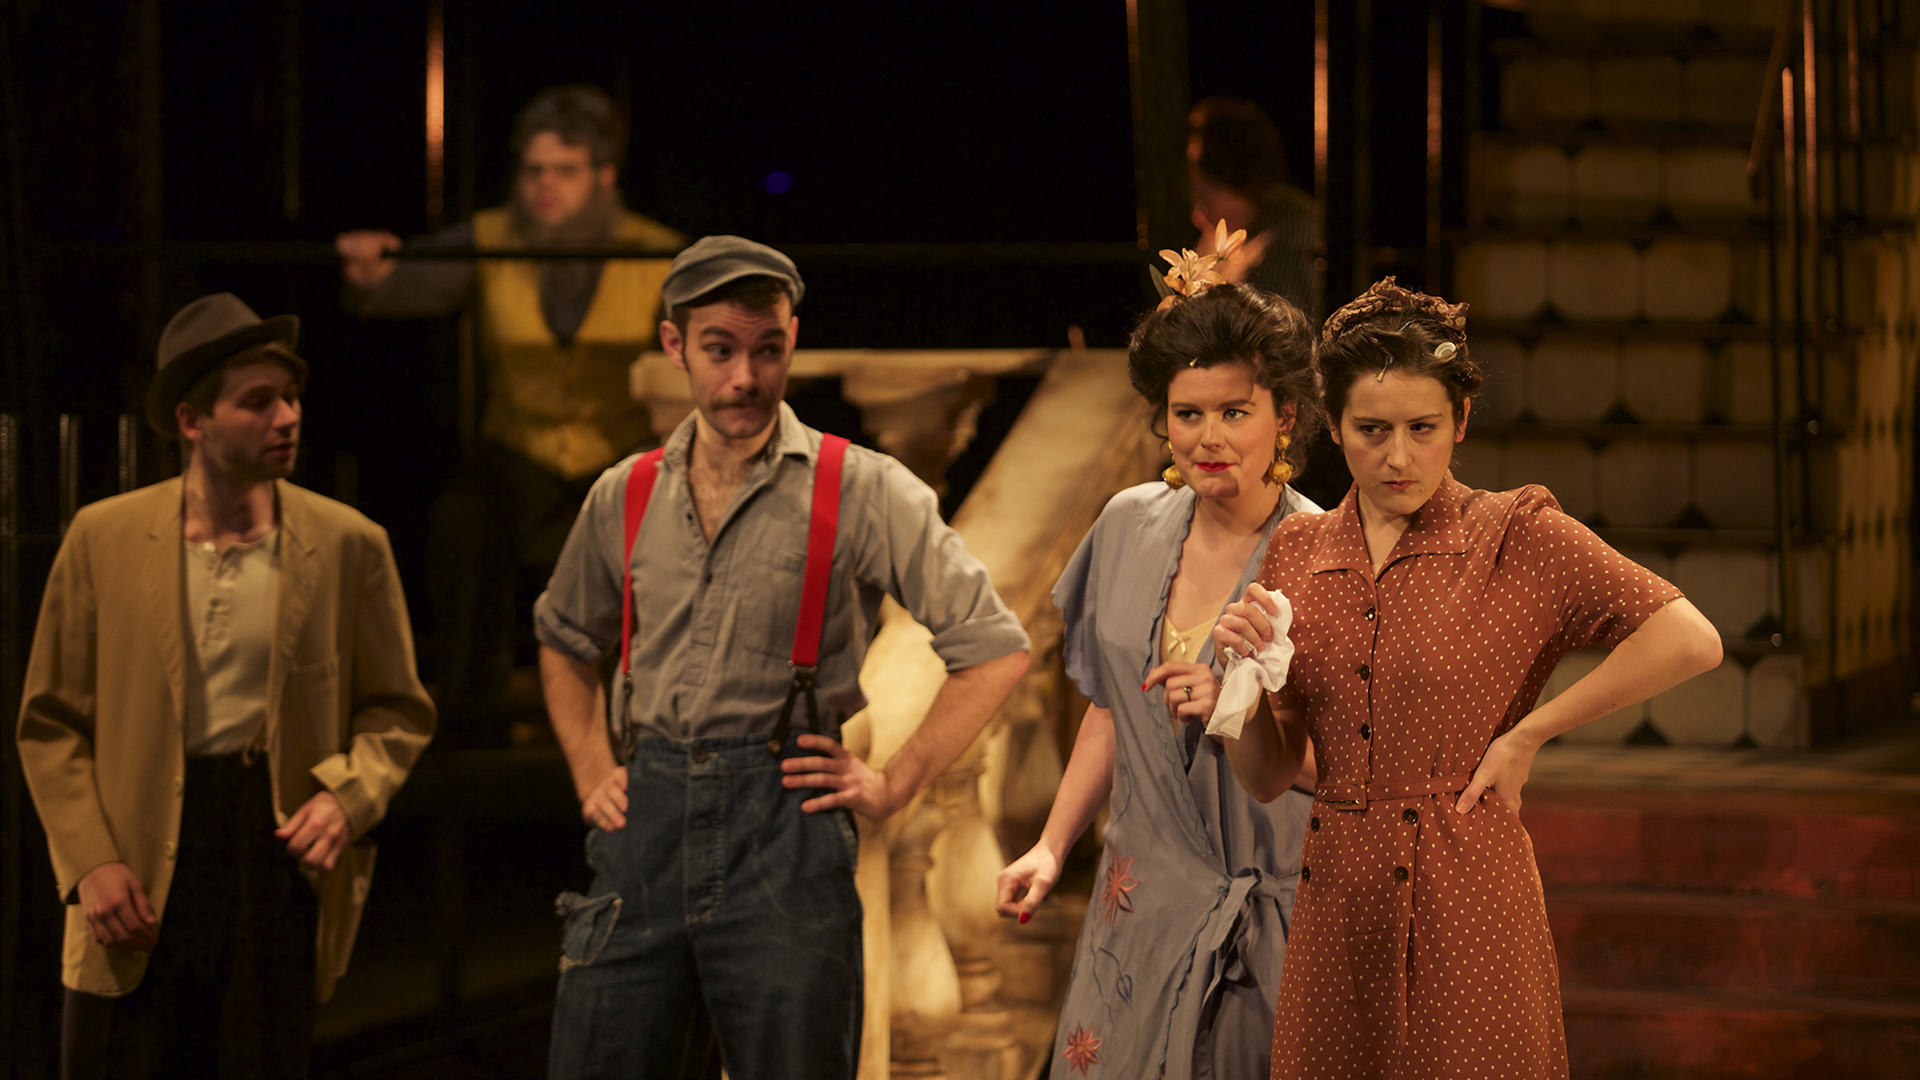 Sam Jackson (George Jones), Edwin Kaye (Carl Olsen), Sarah Foubert (Greta Fiorentino) & Joanna Harries (Emma Jones) 399.jpg